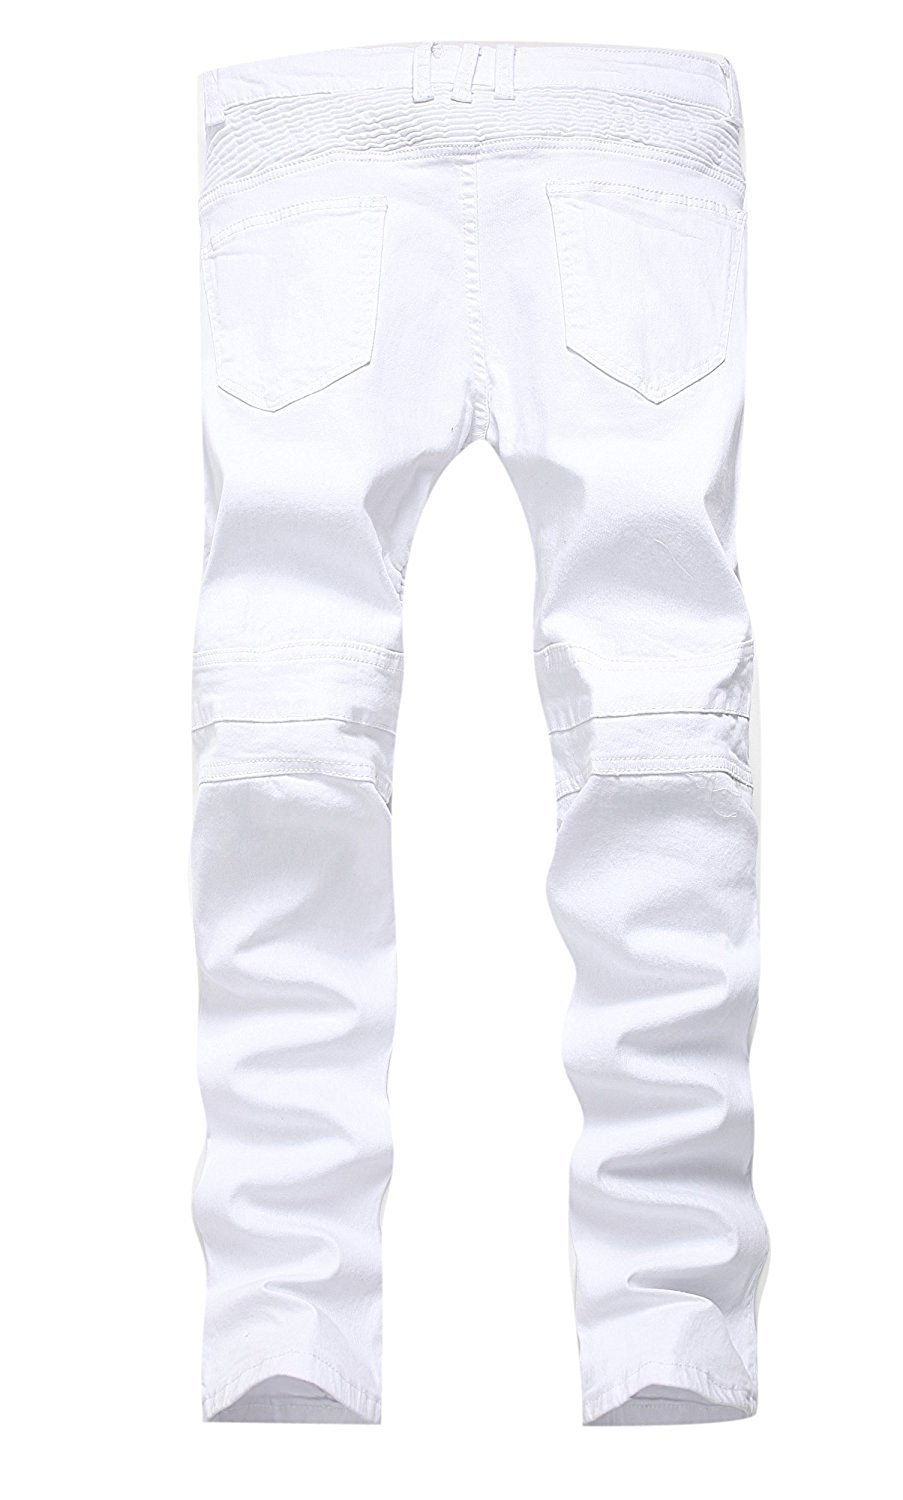 TOPING Fine Fashion;Handsome Men's Biker Moto Distressed Destroyed Fashion Skinny Fit Jeans WhiteW32